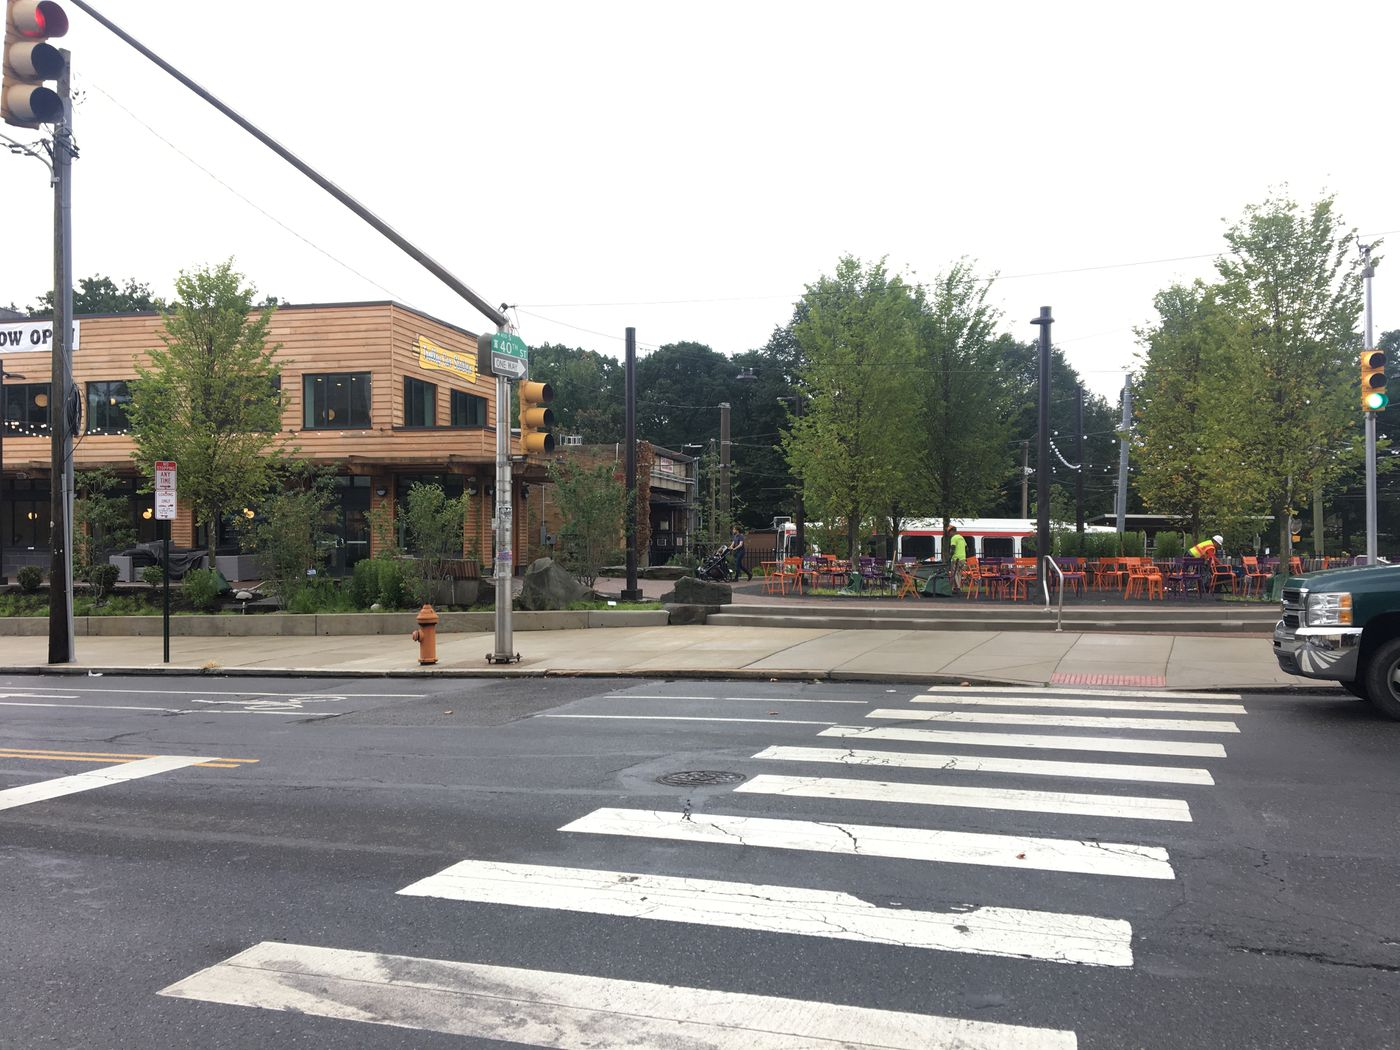 A view of the Trolley Portal Gardens from Baltimore Avenue.